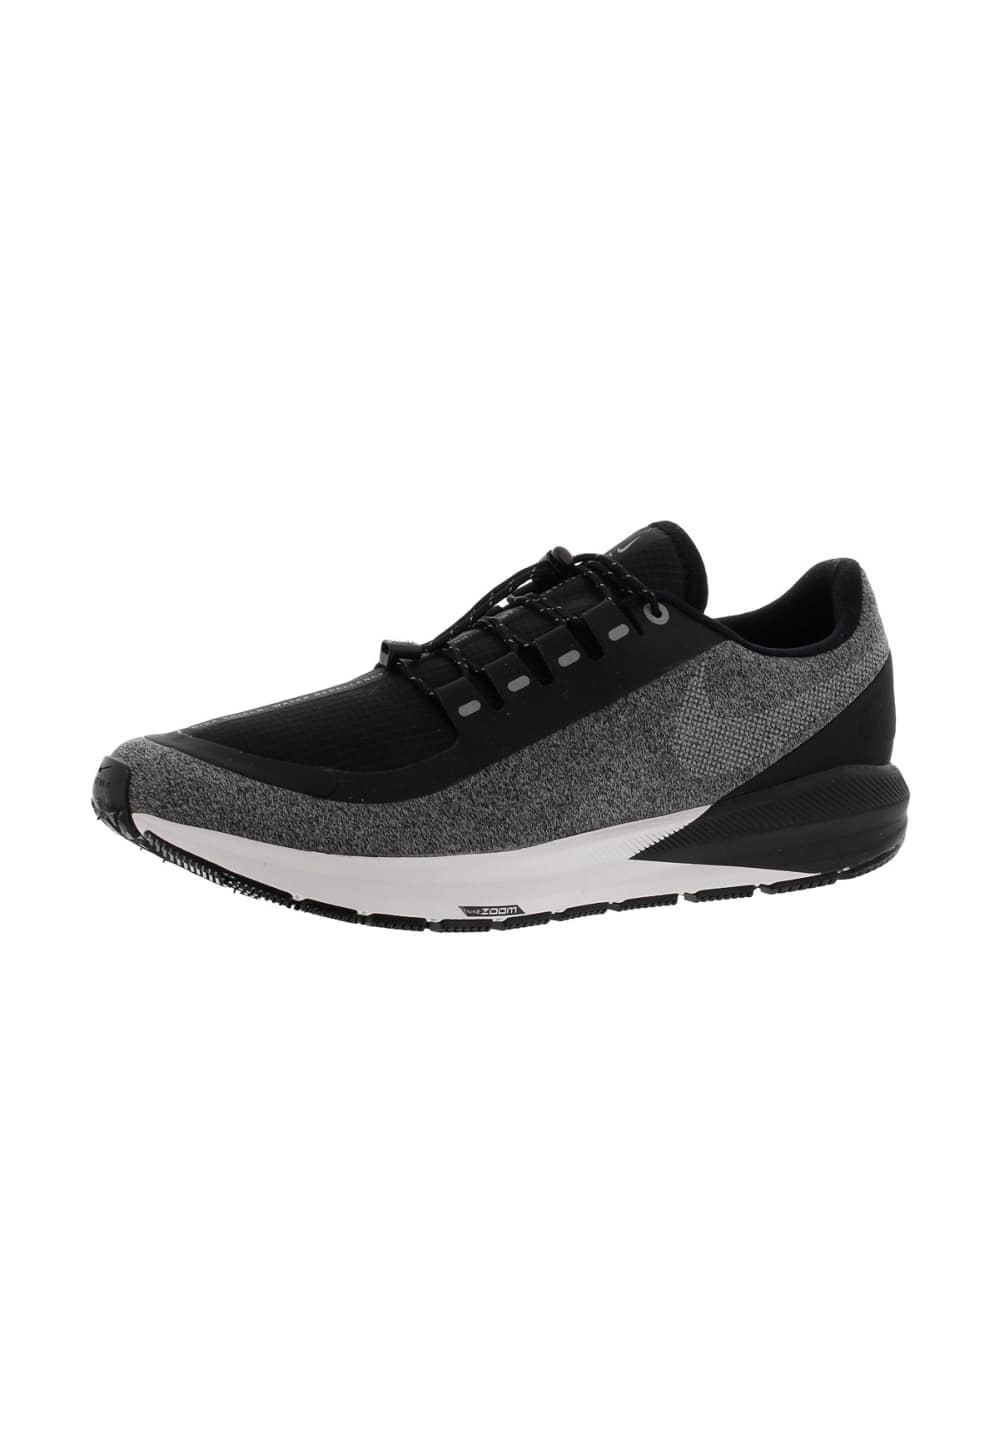 e07bb720628 Next. -32%. Nike. Air Zoom Structure 22 Rn Shield - Running shoes for Women